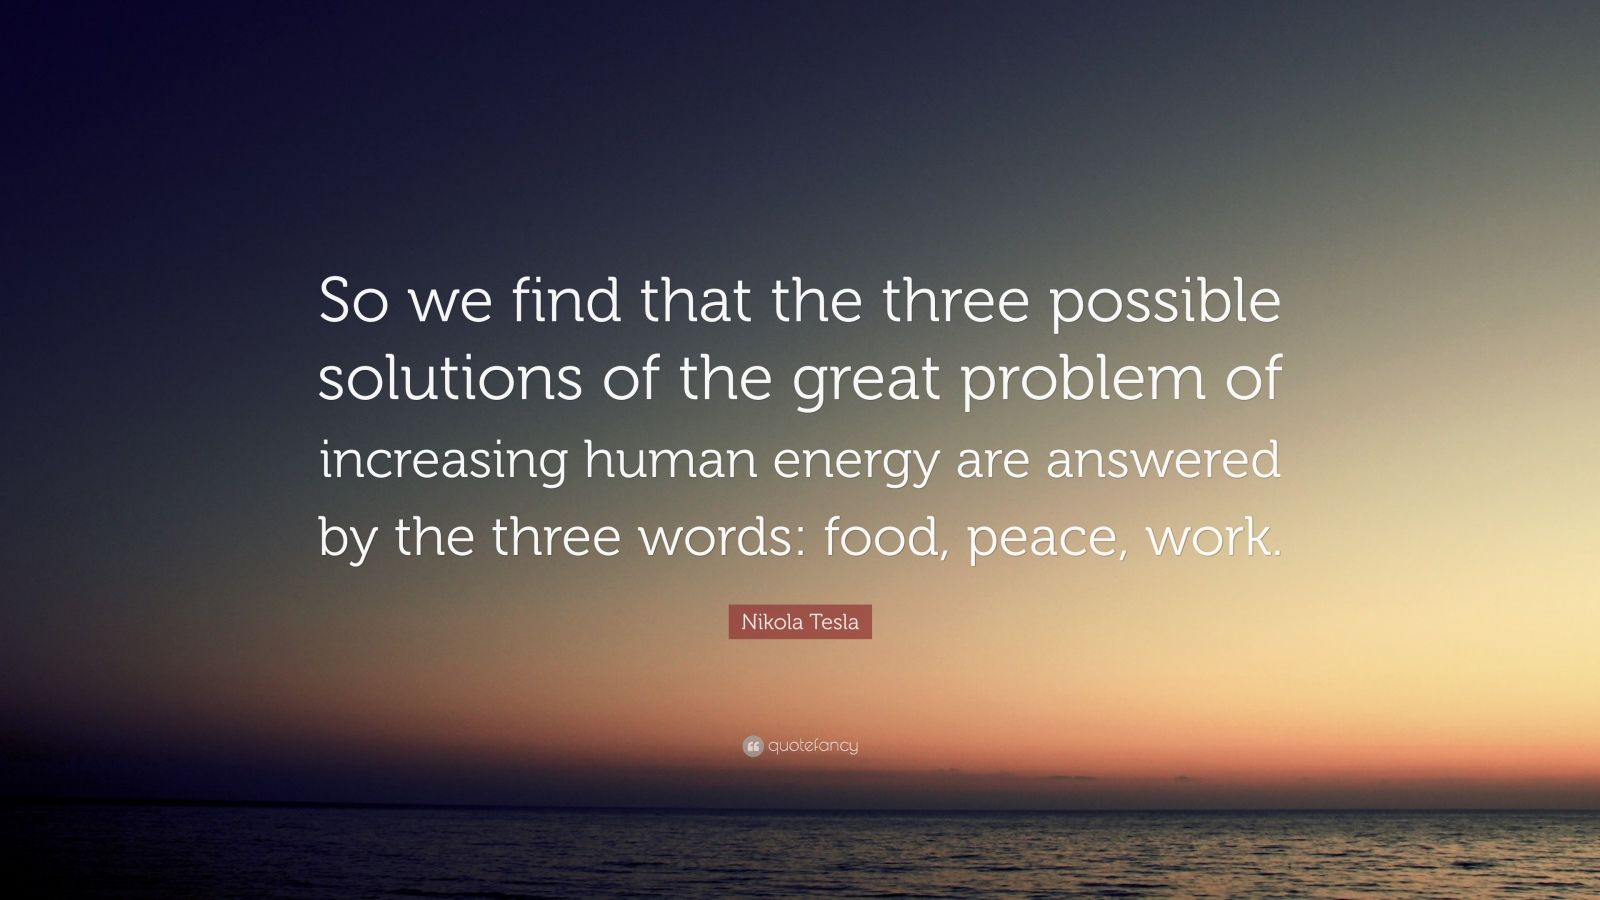 """Nikola Tesla Quote: """"So we find that the three possible solutions of the great problem of increasing human energy are answered by the three words: food, peace, work."""""""